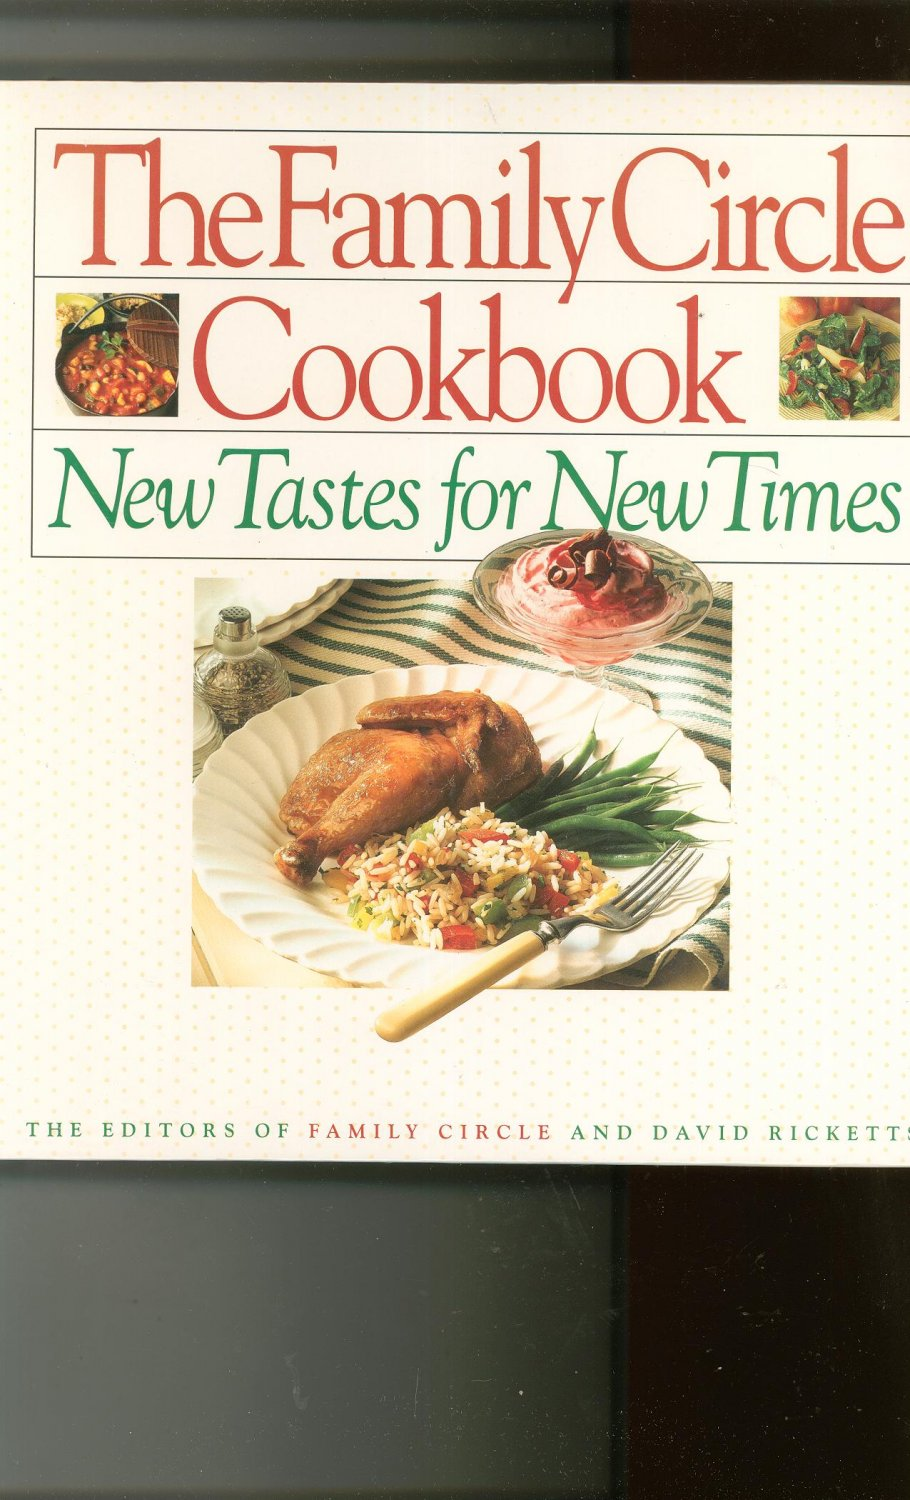 The Family Circle Cookbook New Tastes For New Times 0671735721